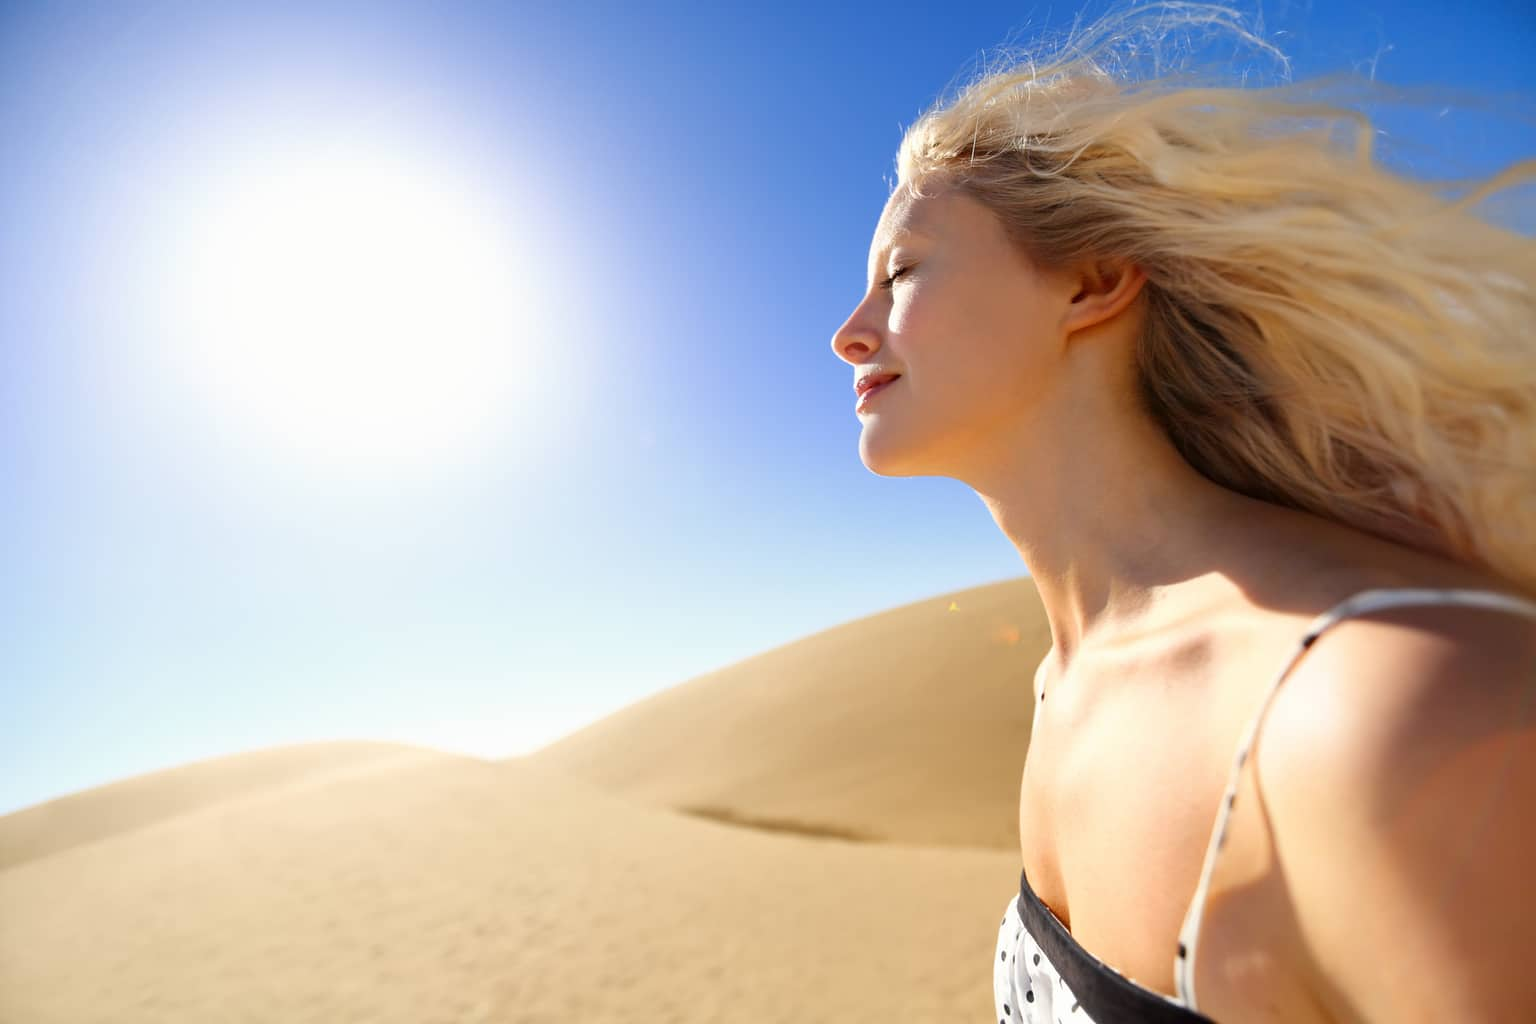 Can a common vitamin prevent sun damage?